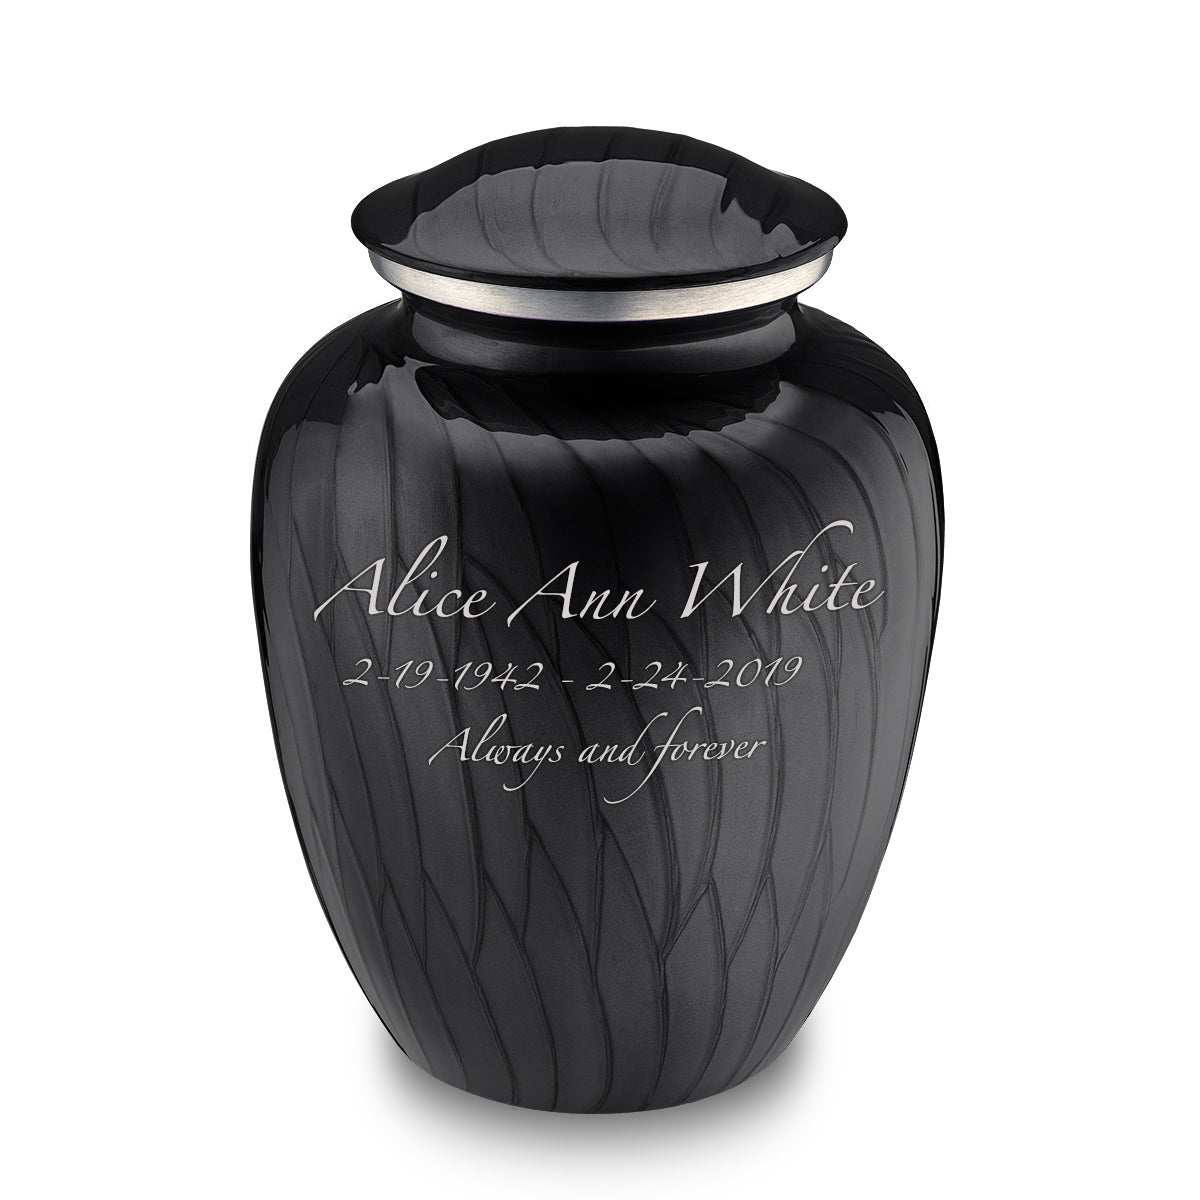 Adult Embrace Pearl Black Cremation Urn